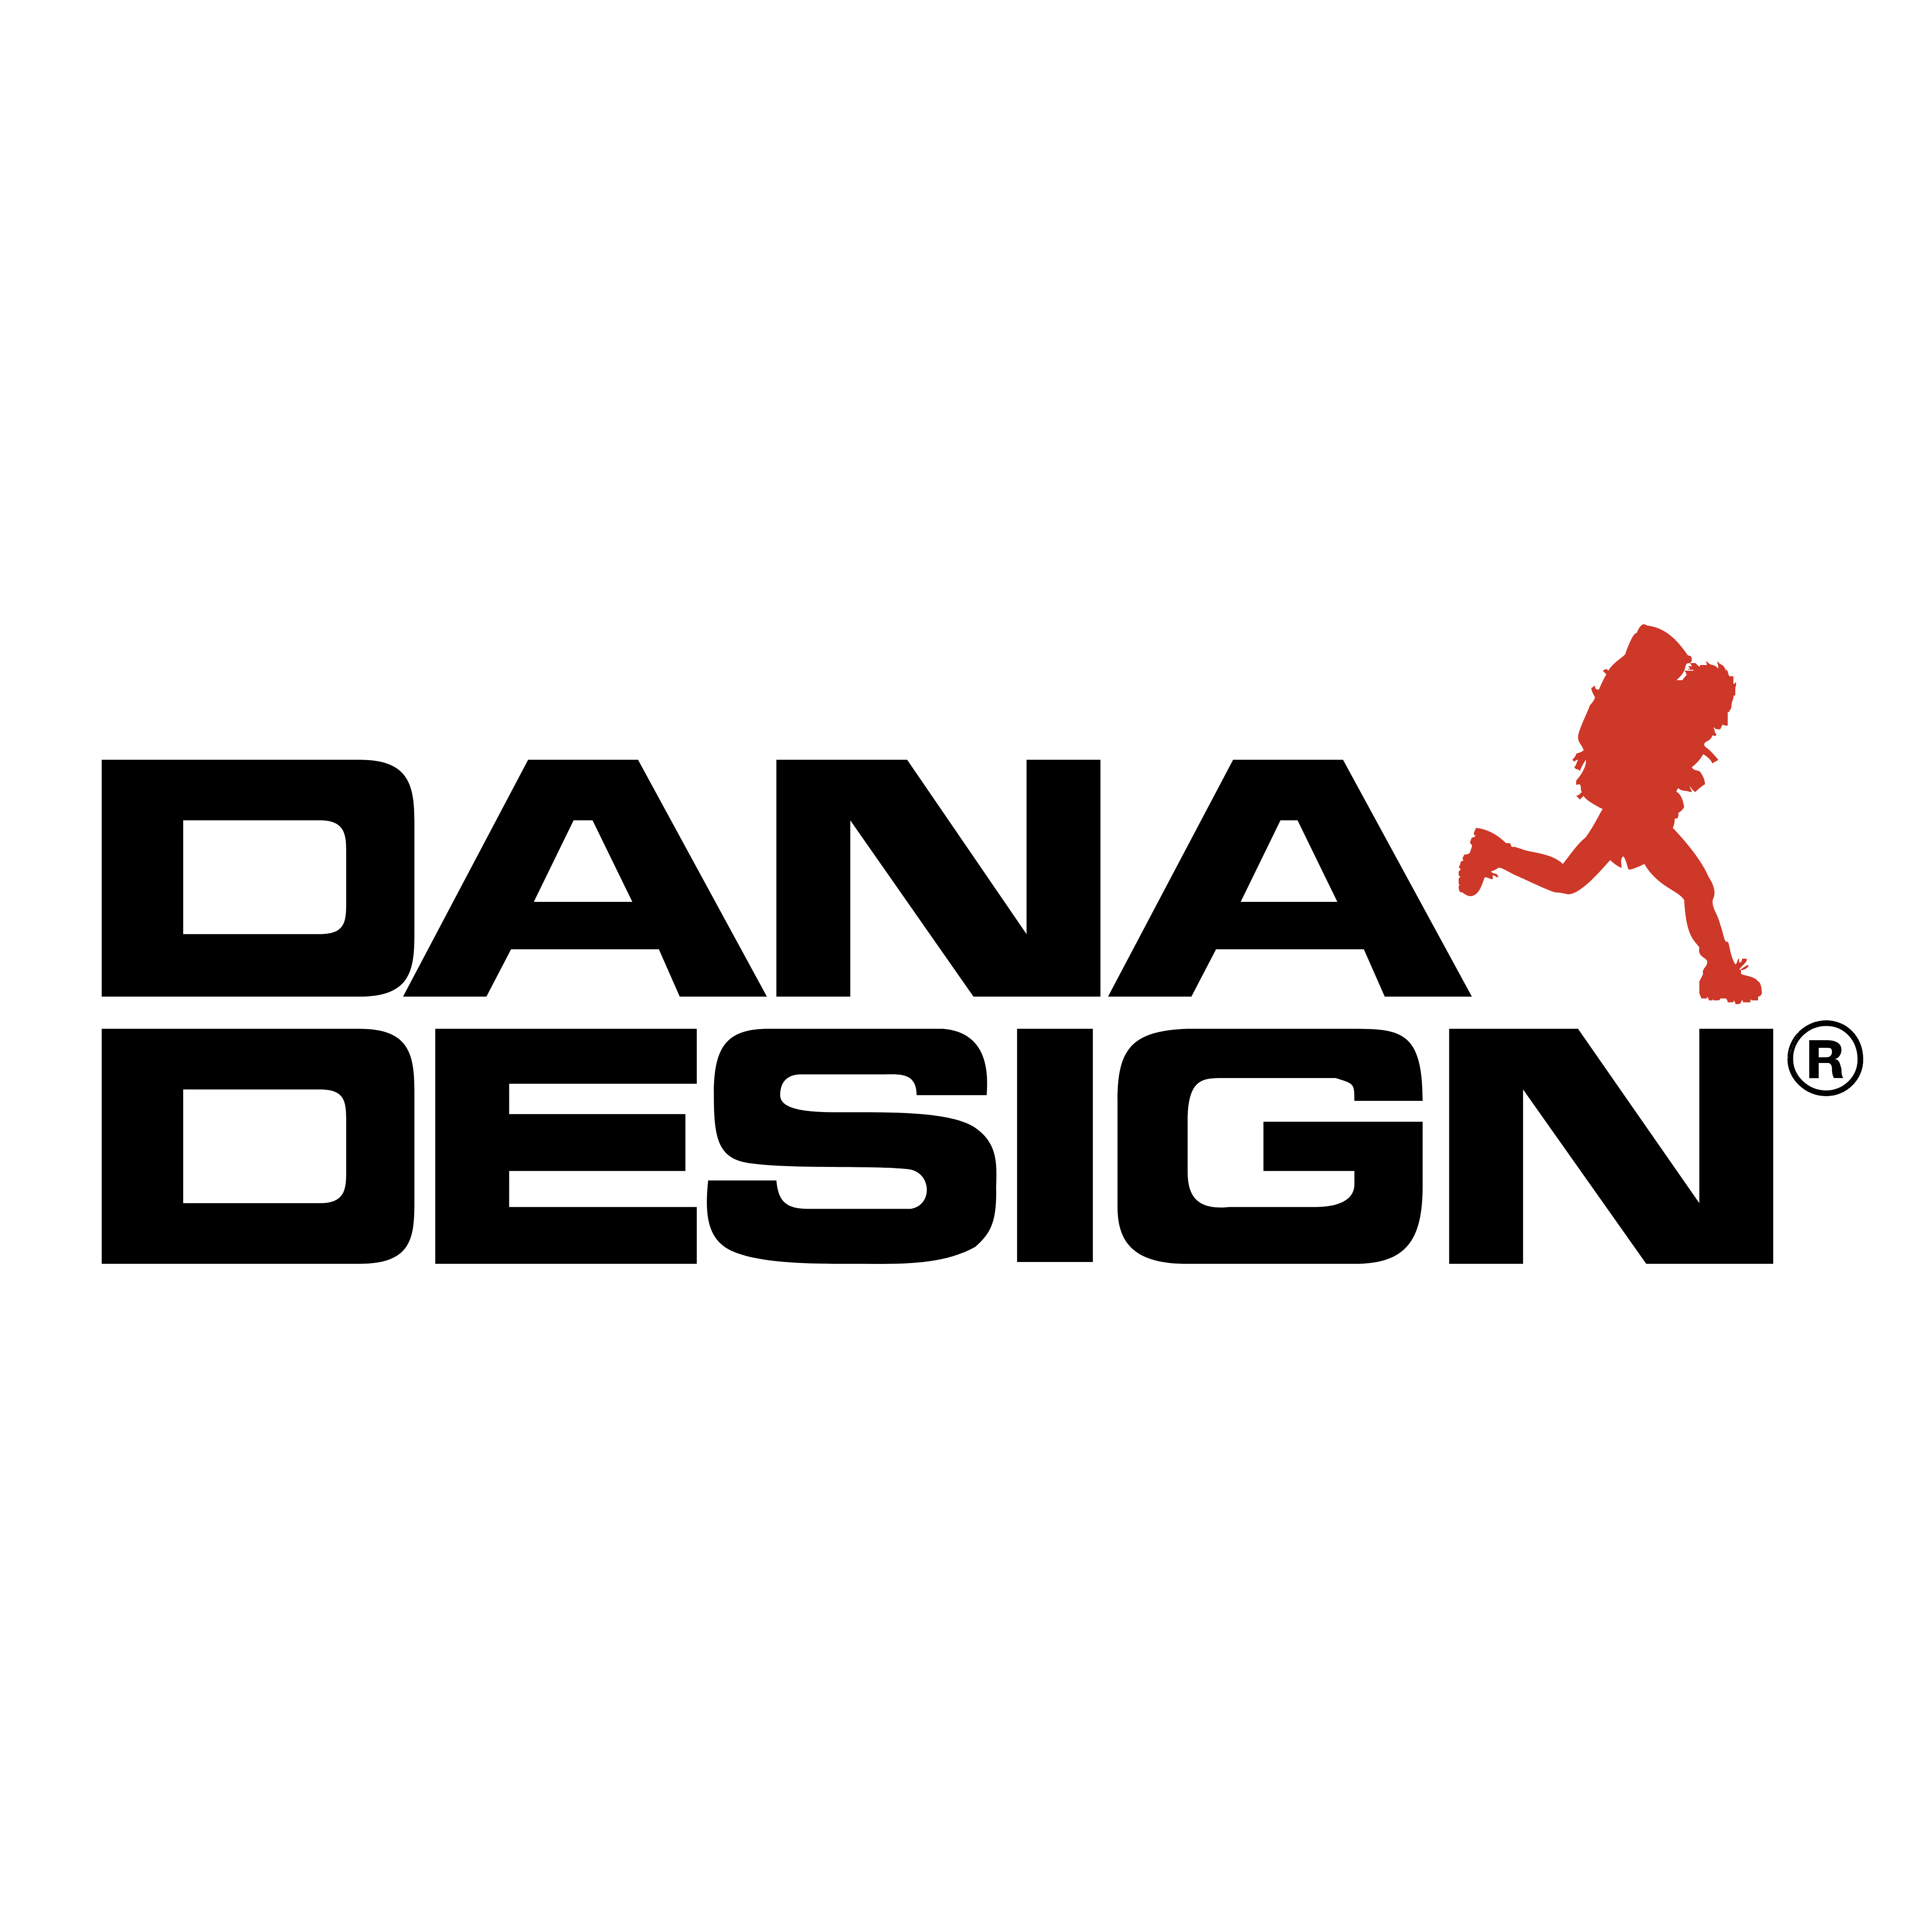 dana design logos download logos download